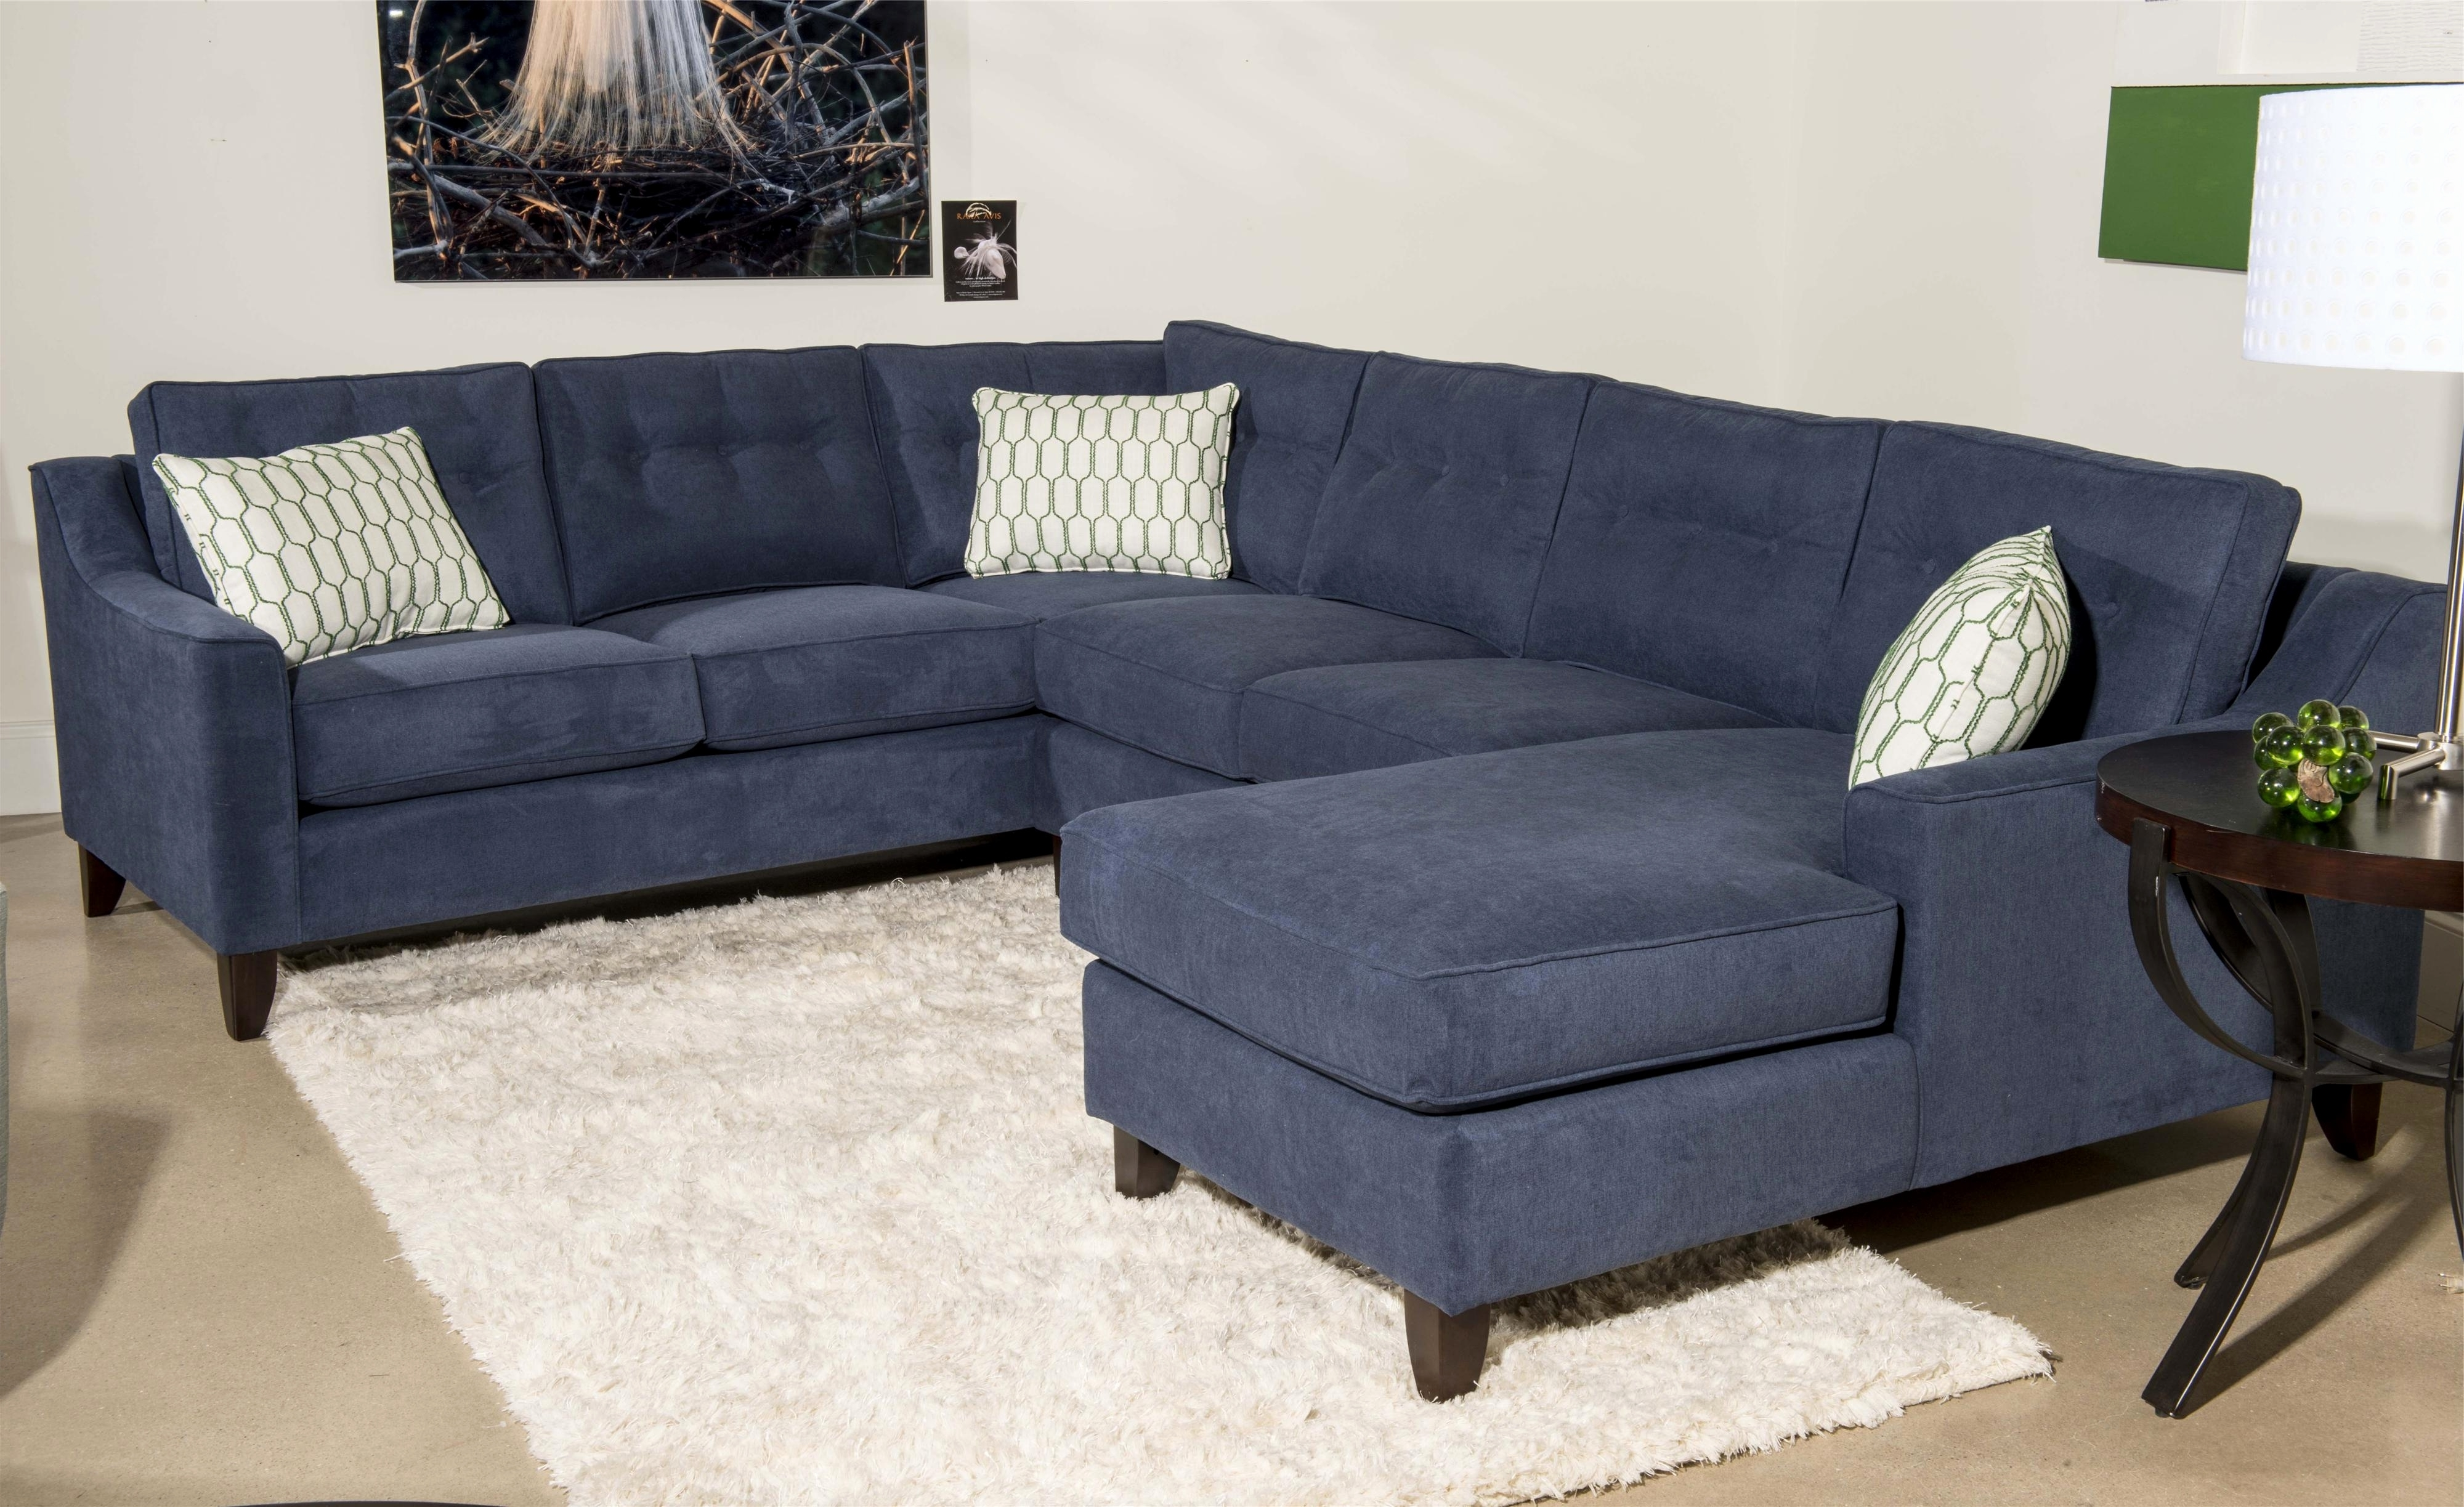 Luxury U Shaped Sectional With 2 Chaise 2018 – Couches And Sofas Ideas Intended For Fashionable Blue U Shaped Sectionals (View 3 of 15)